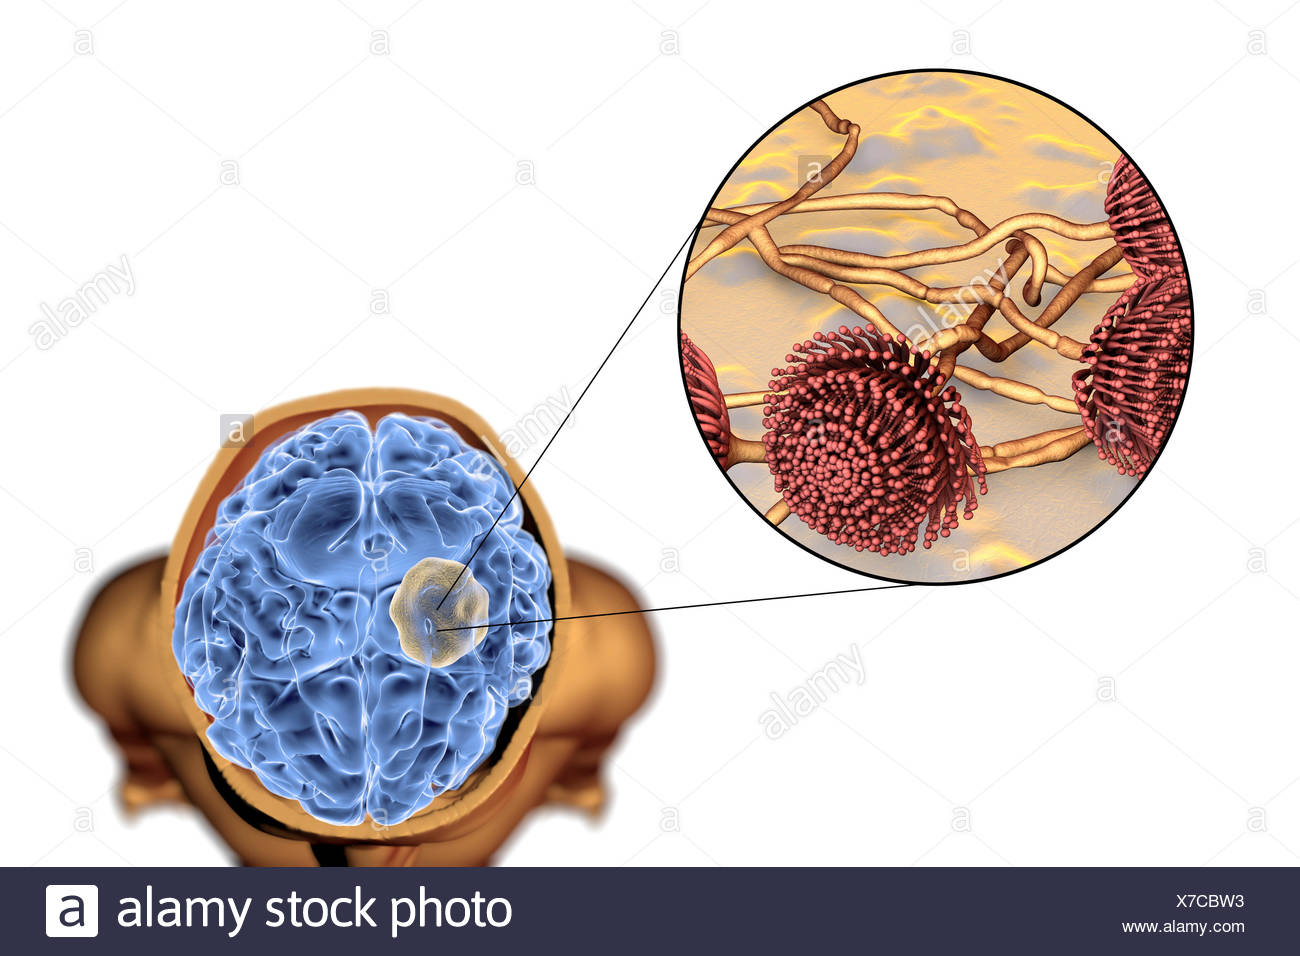 Aspergilloma of the brain and close-up view of Aspergillus fungi, computer illustration. Also known as mycetoma, or fungus ball, this is an intracranial lesion produced by Aspergillus fungi in immunocompromised patients. - Stock Image